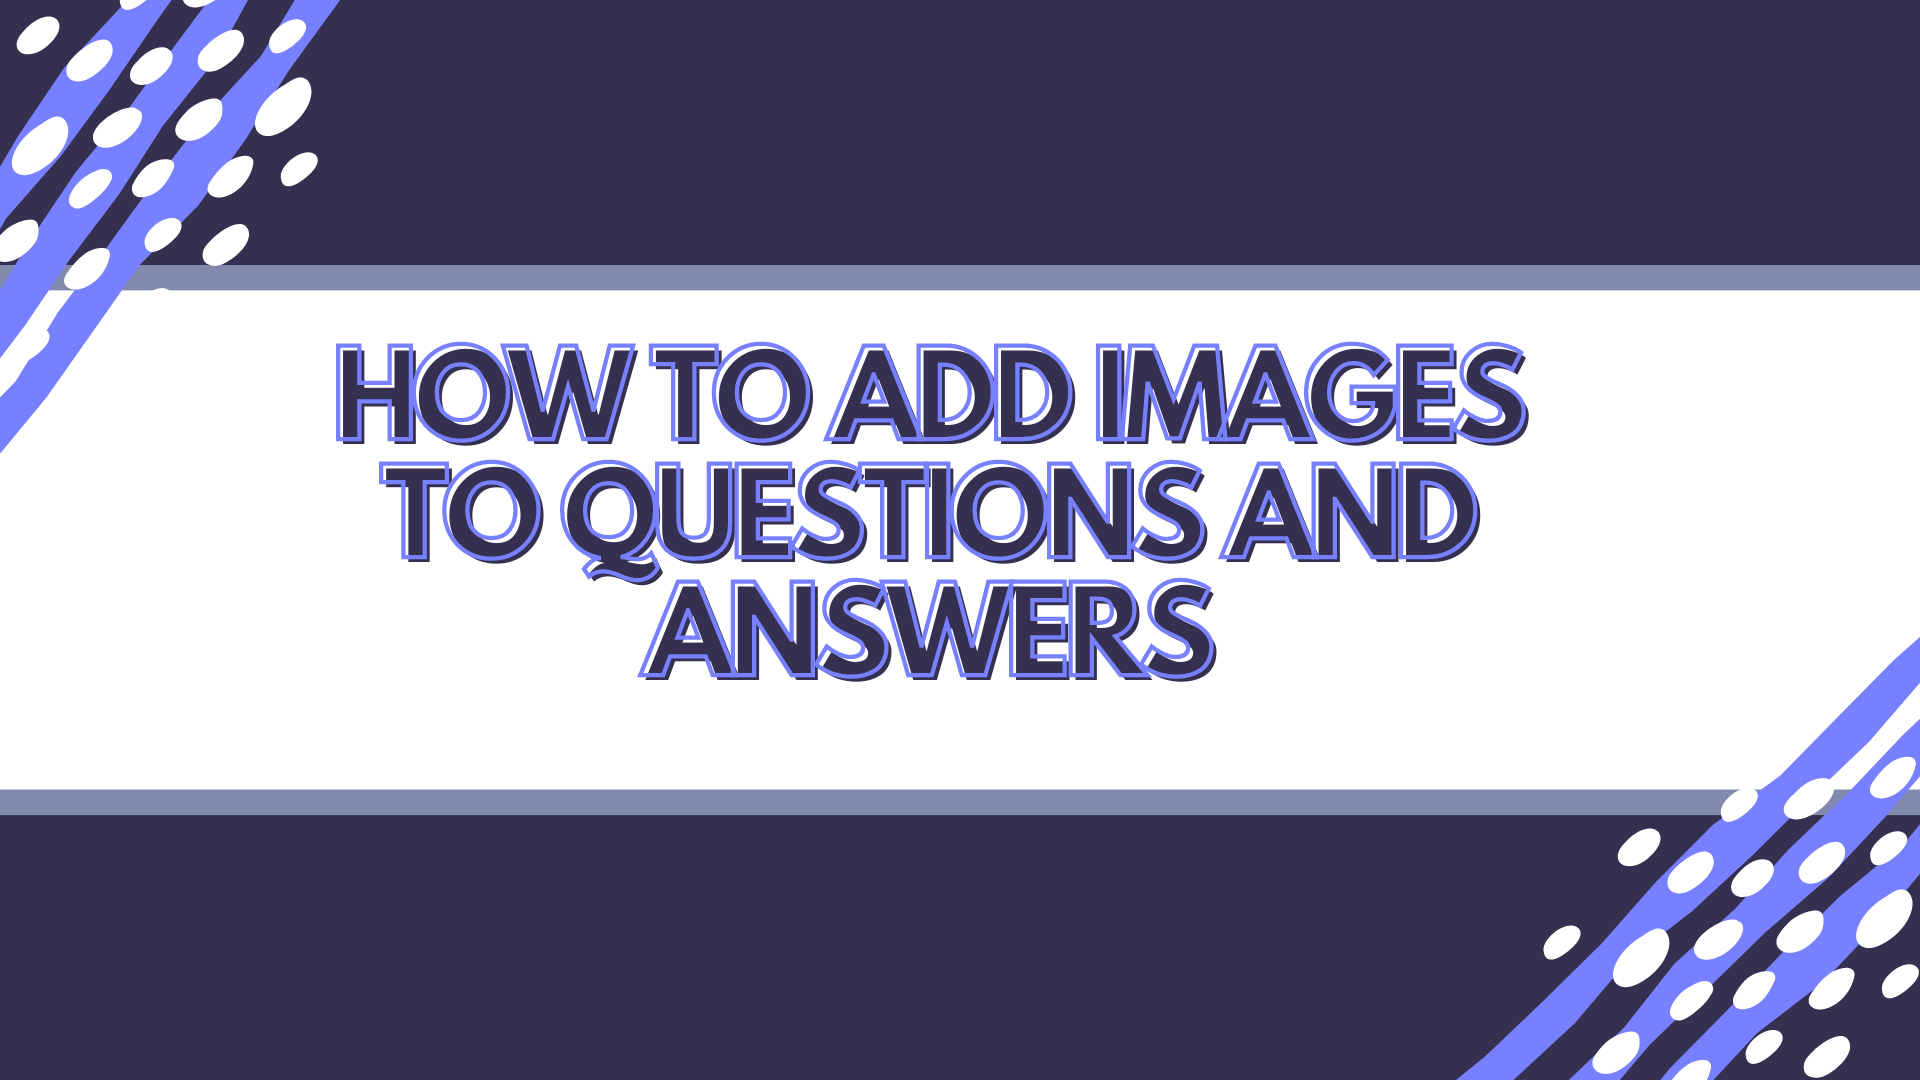 how to add images to questions and answers